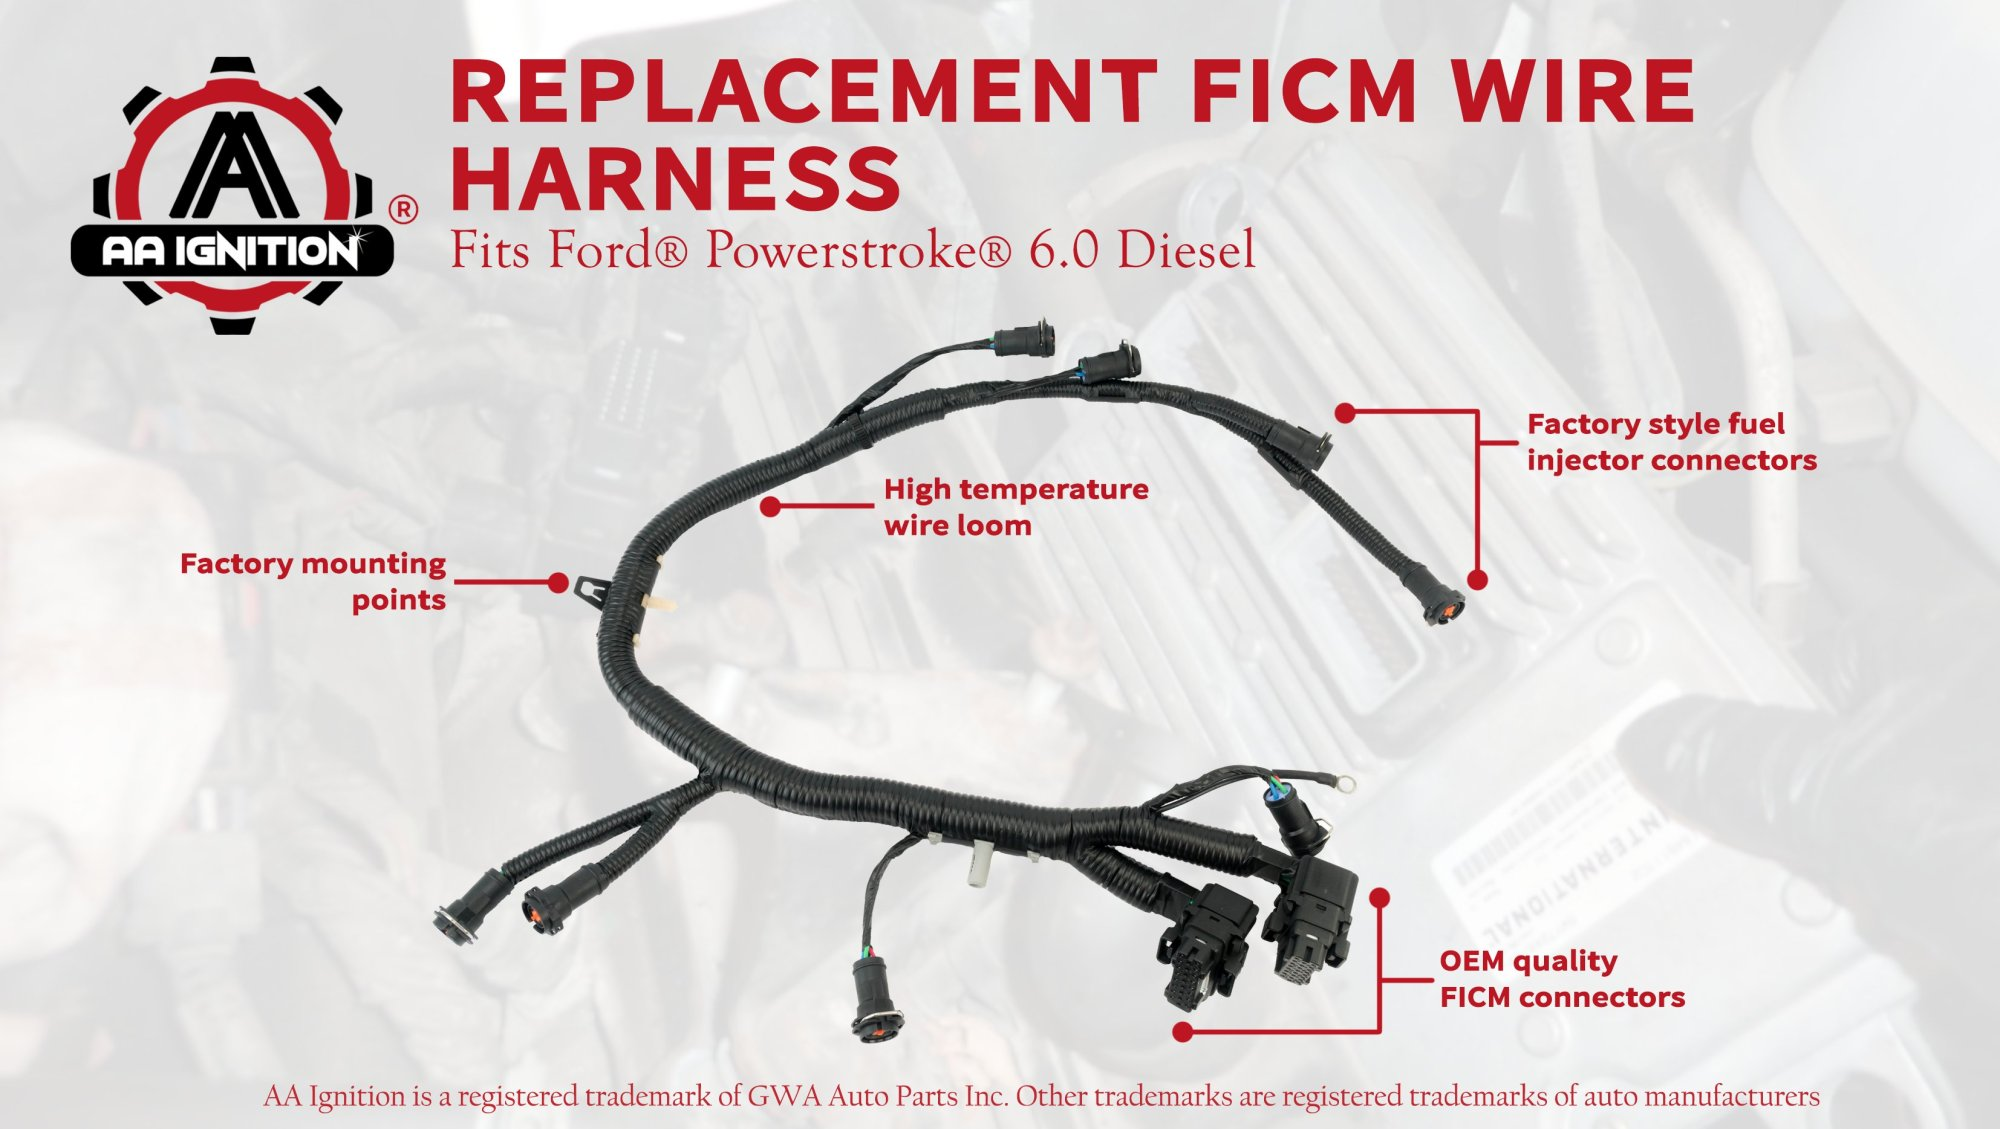 hight resolution of ficm engine fuel injector complete wire harness replaces part 5c3z9d930a ford powerstroke 6 0l diesel 2003 2004 2005 2006 2007 f250 f350 f450